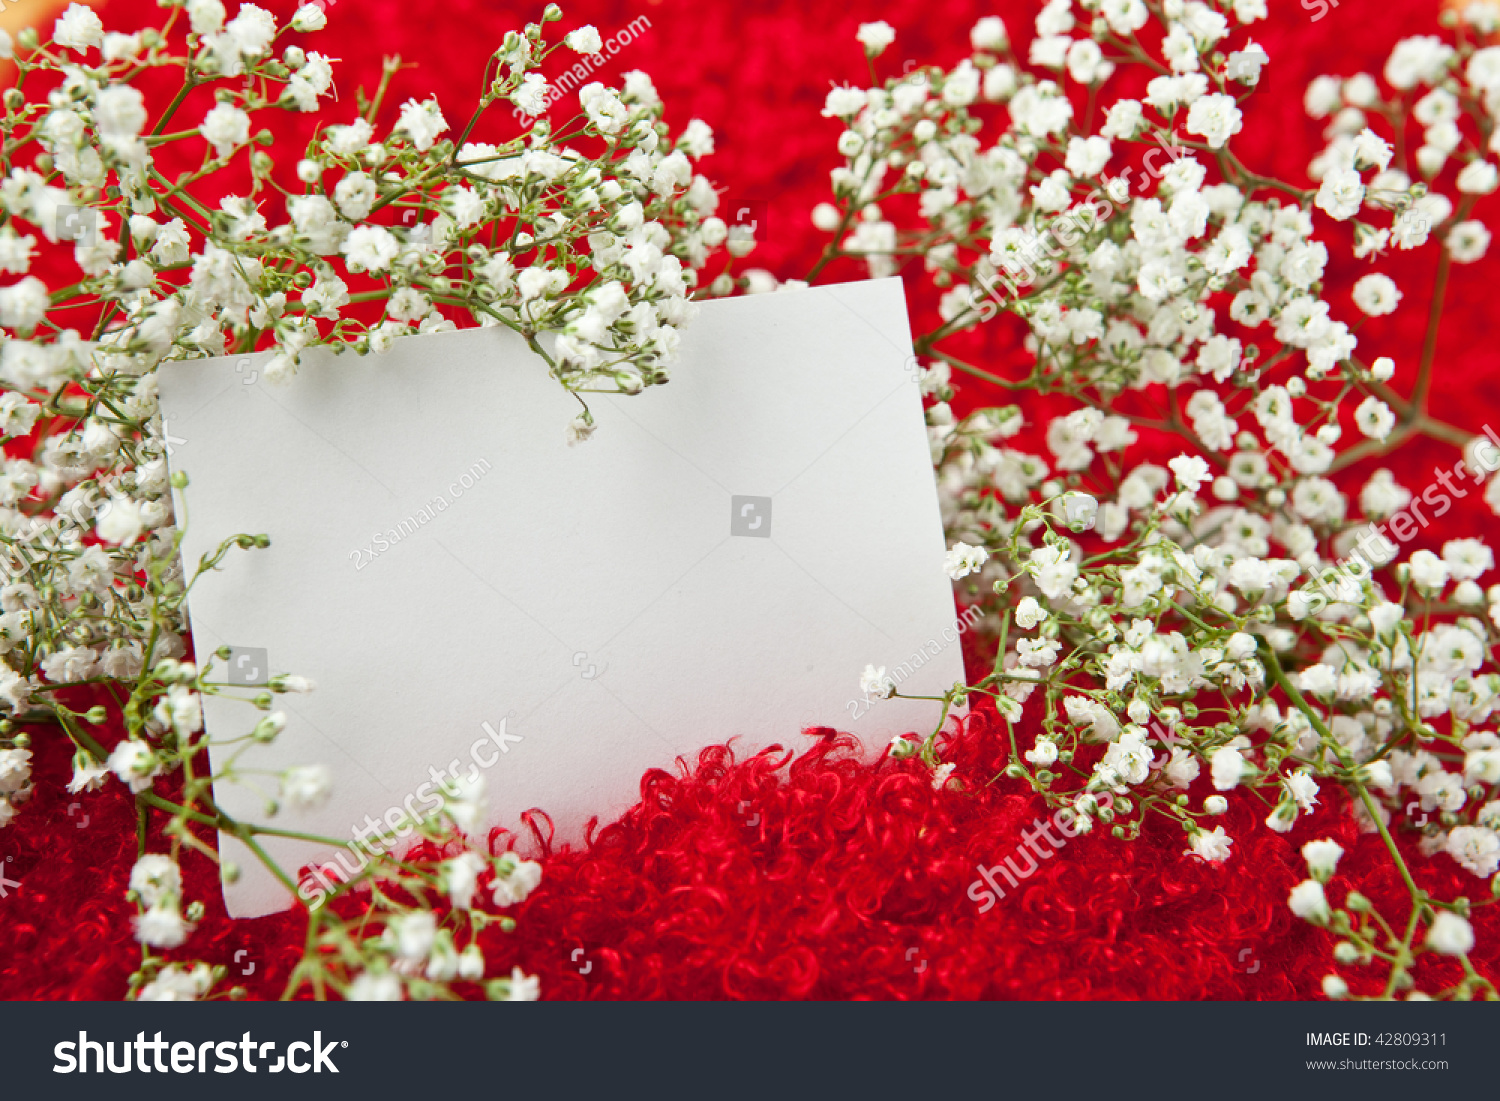 Blank invitation card white flowers on stock photo 42809311 blank invitation card in white flowers on shaggy red fabric stopboris Images